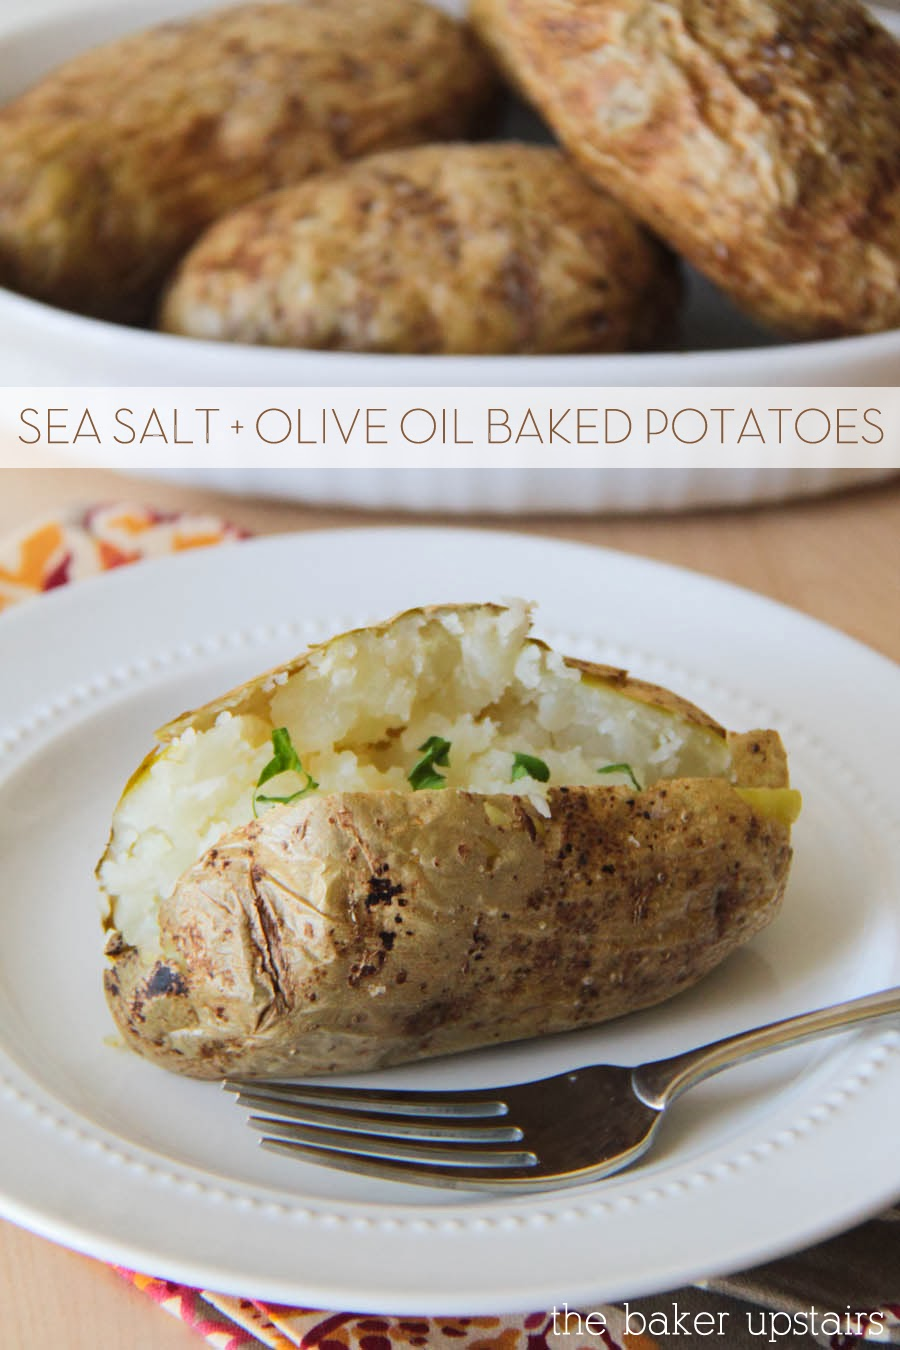 the baker upstairs: sea salt and olive oil baked potatoes